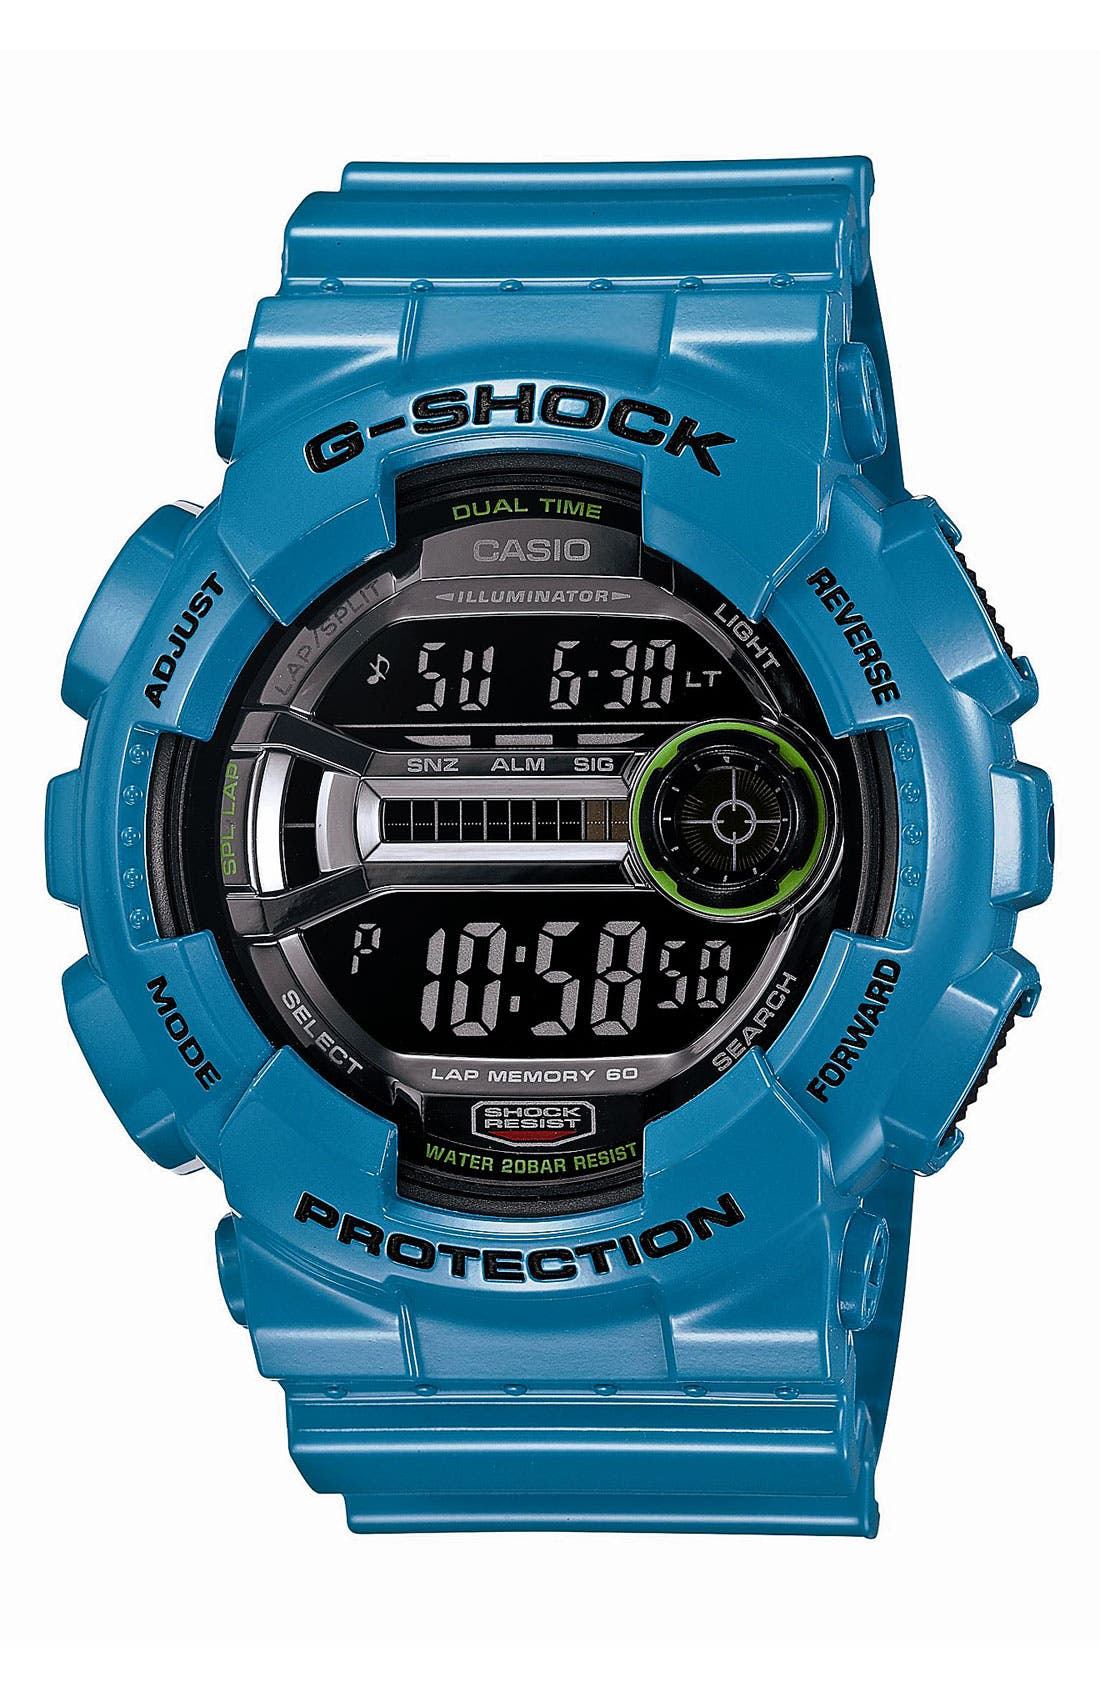 Main Image - G-Shock 'X-Large' Digital Watch, 55mm x 51mm